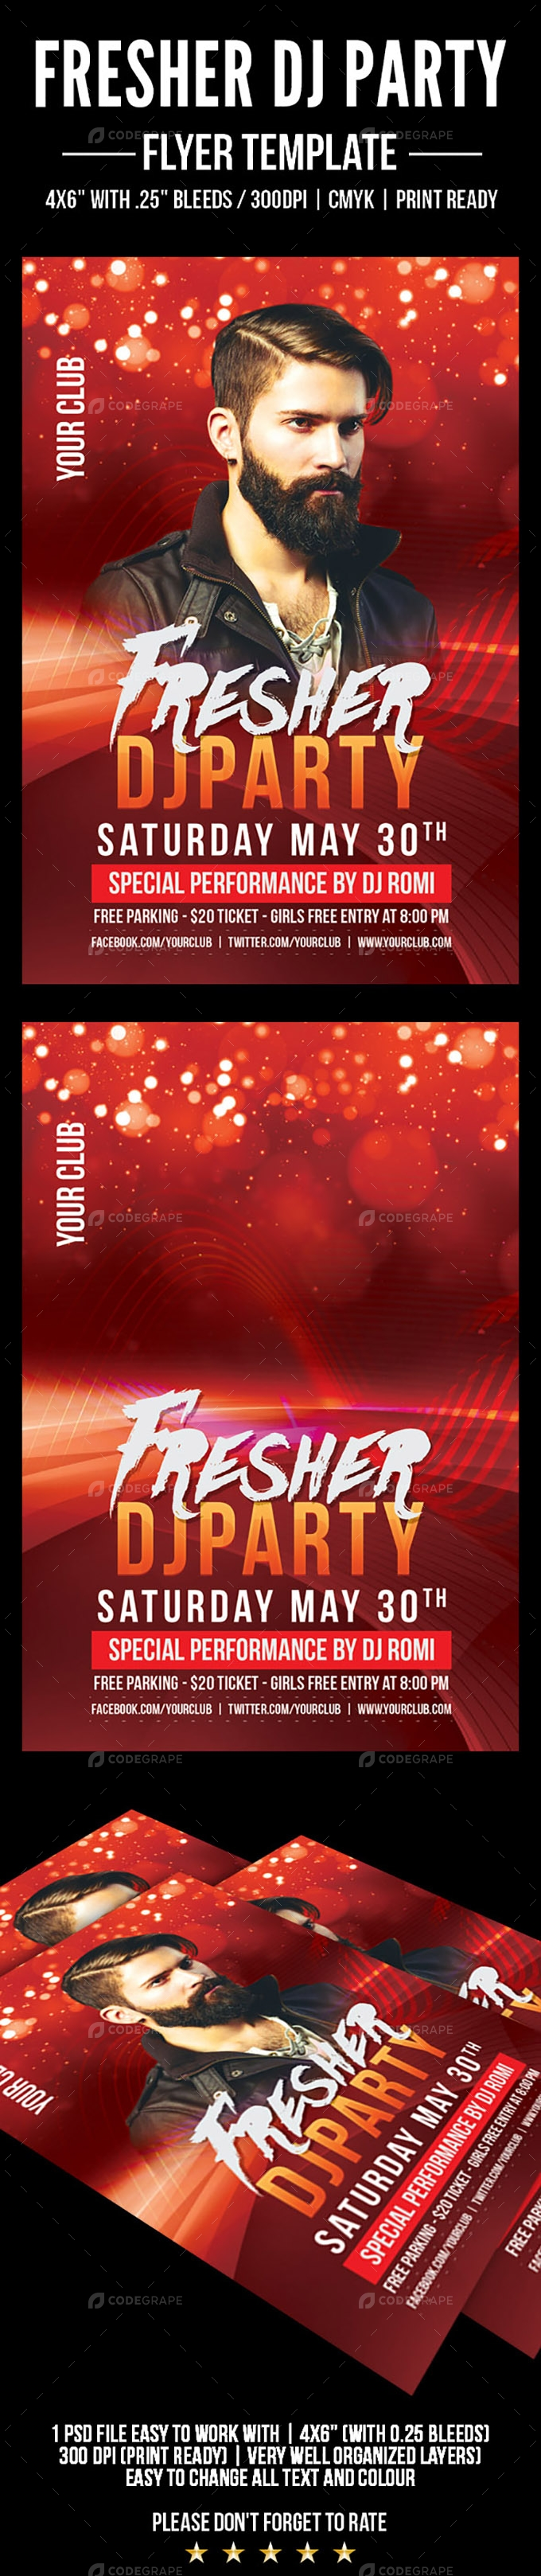 Fresher DJ Party Flyer